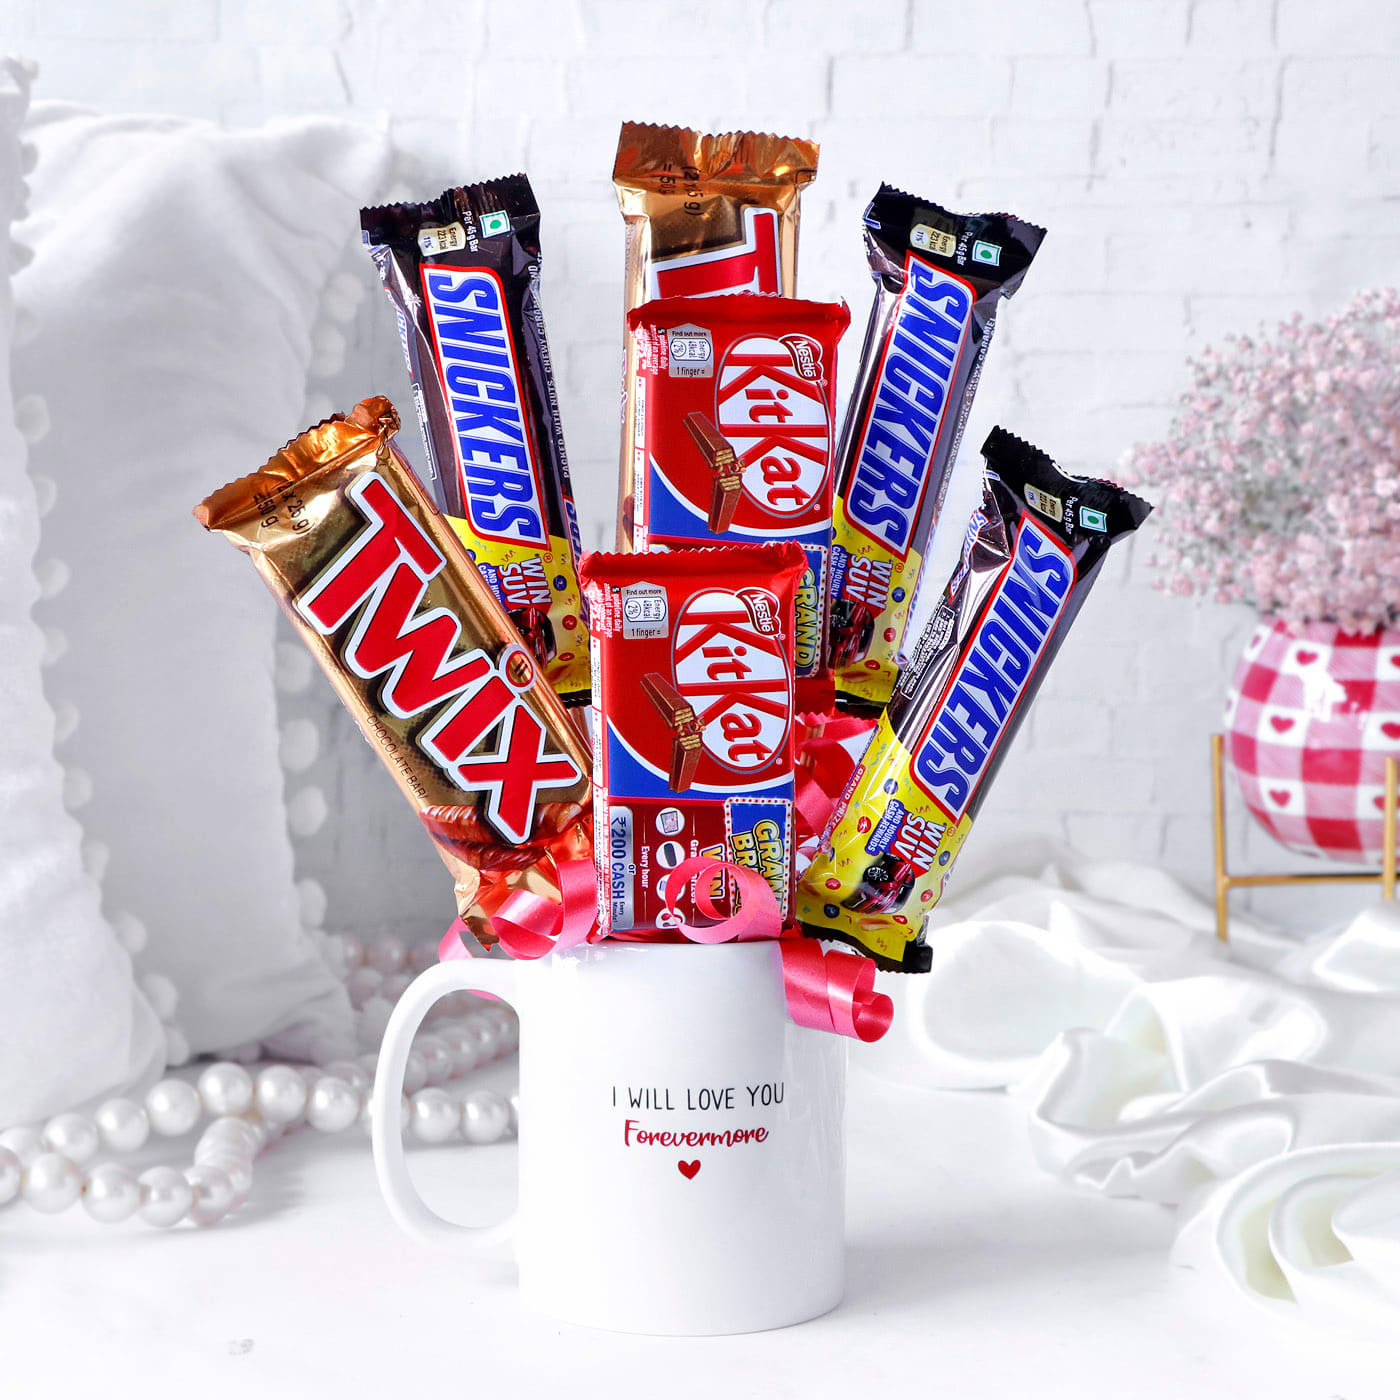 Snickers with Kitkat & Twix Chocolate Arrangement in Mug